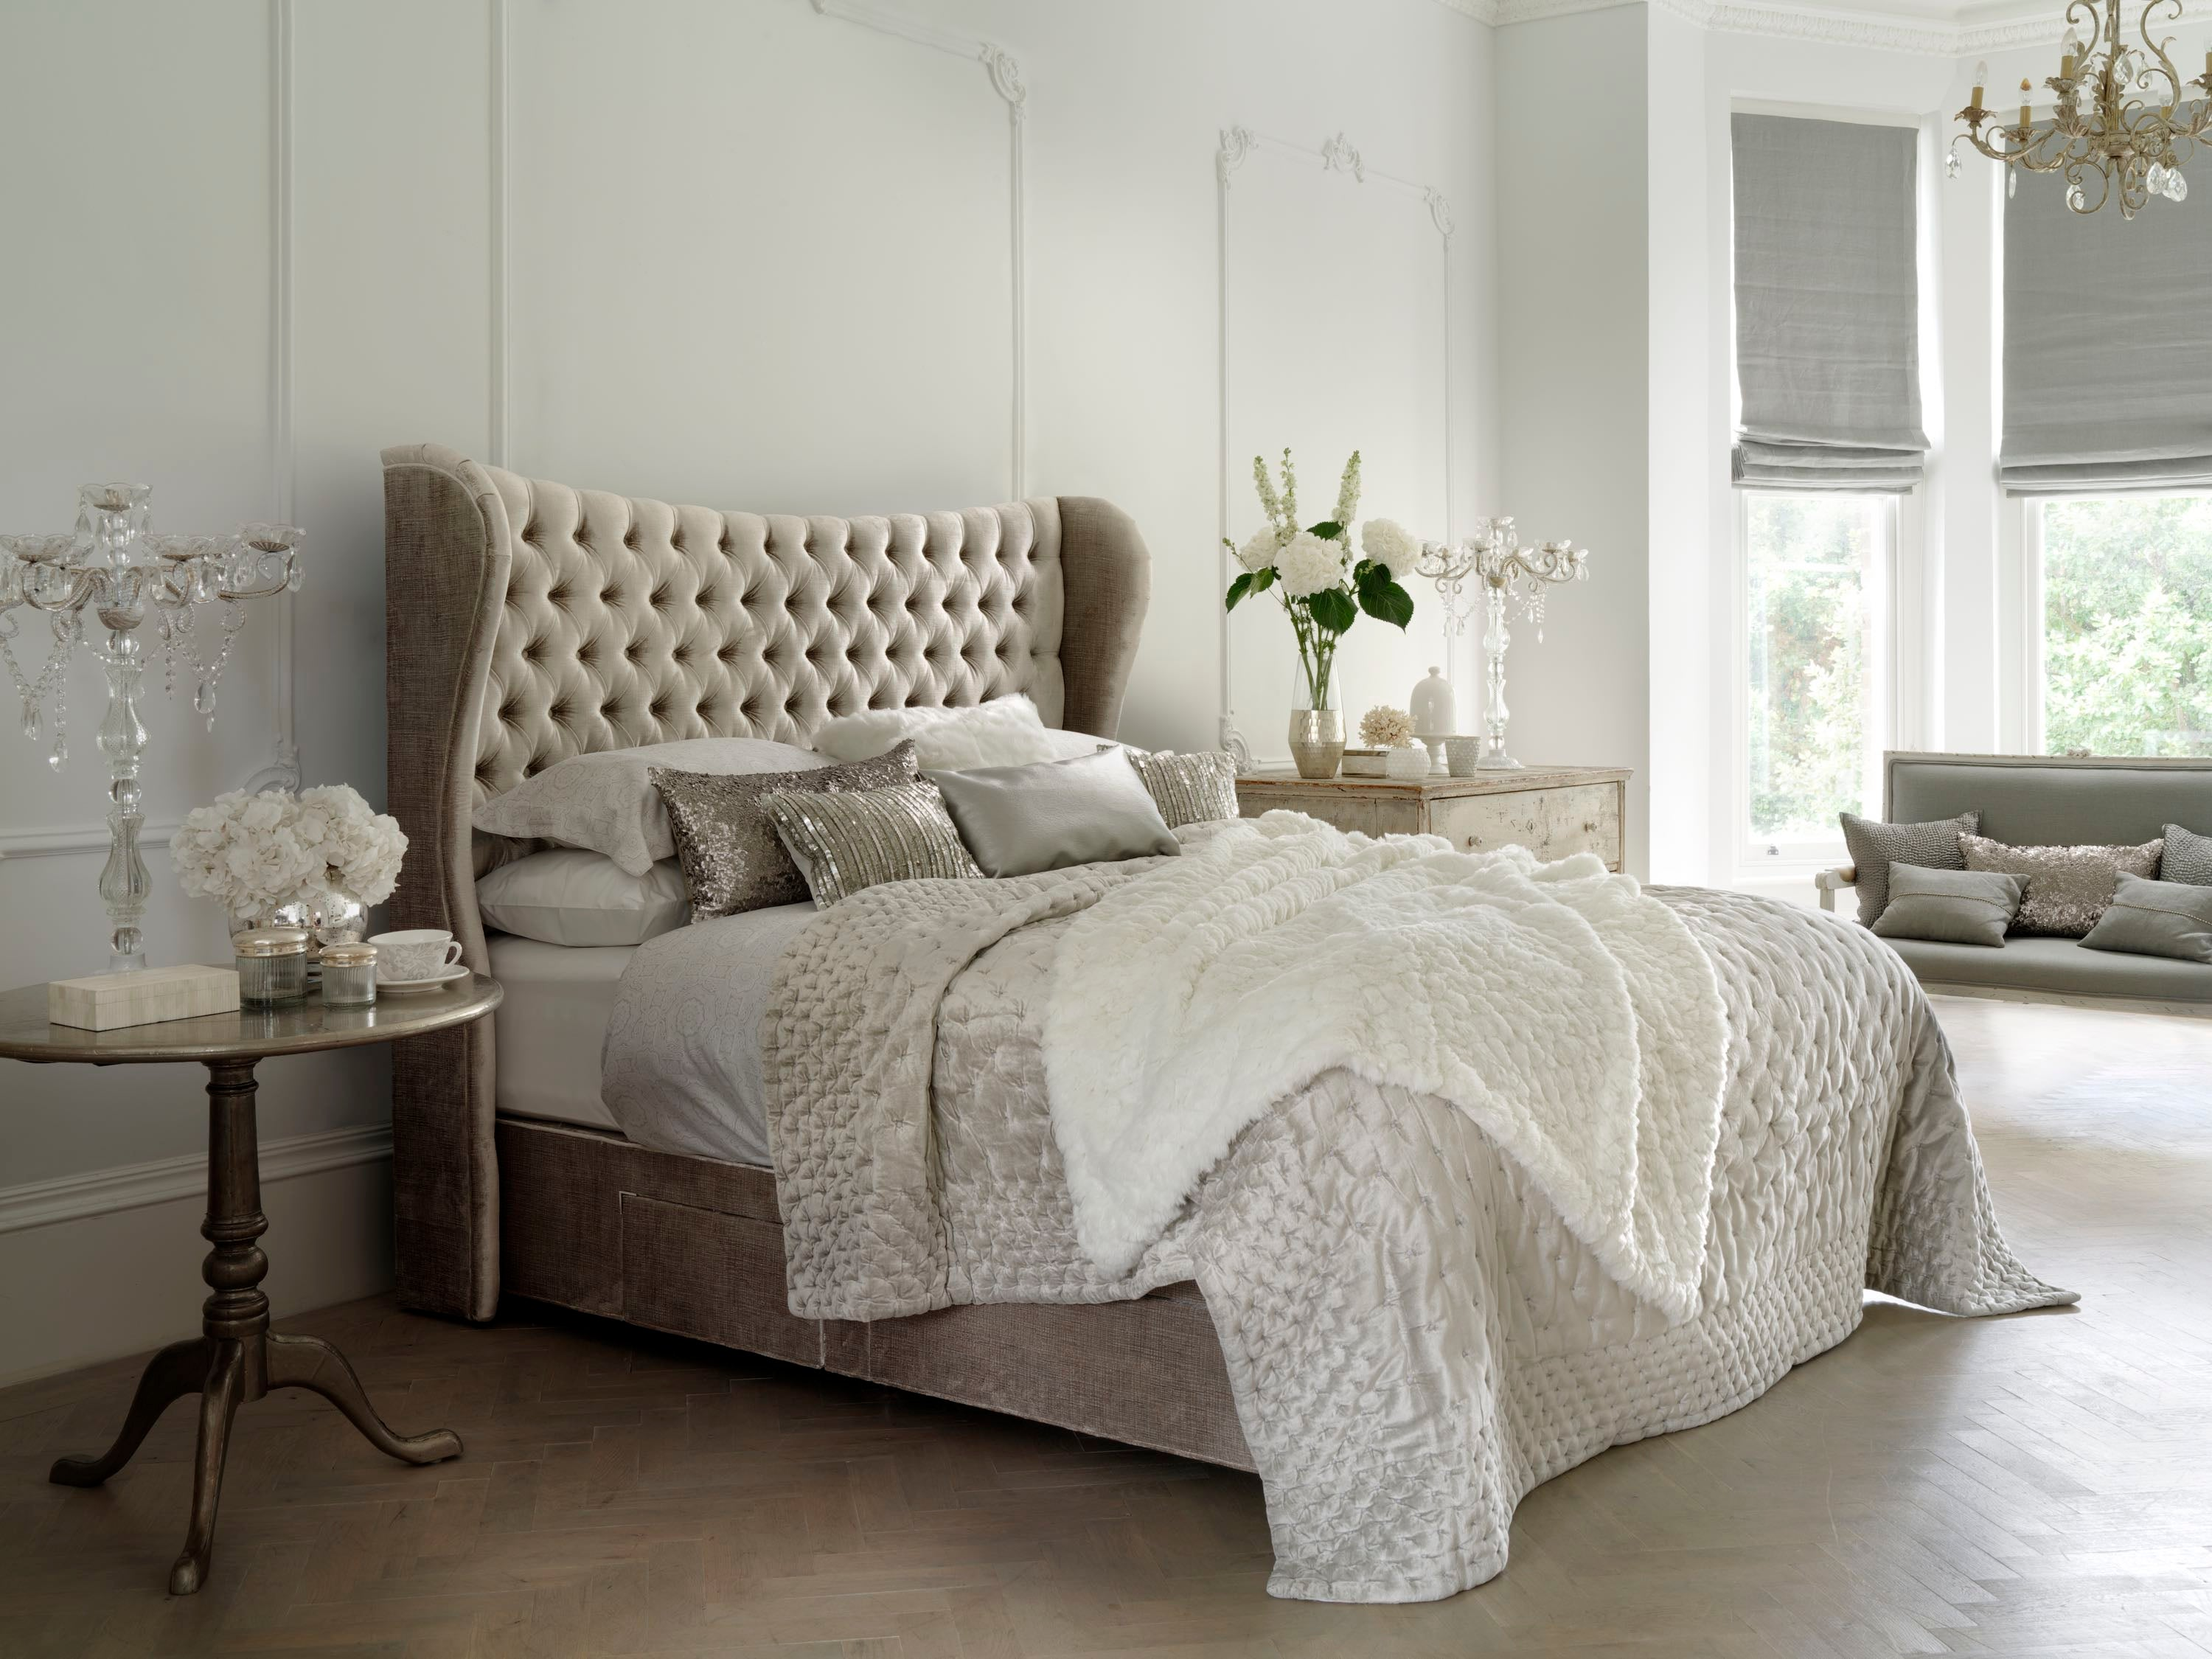 Merveilleux Luxury Bedding U2013 The Best Luxury Mattresses